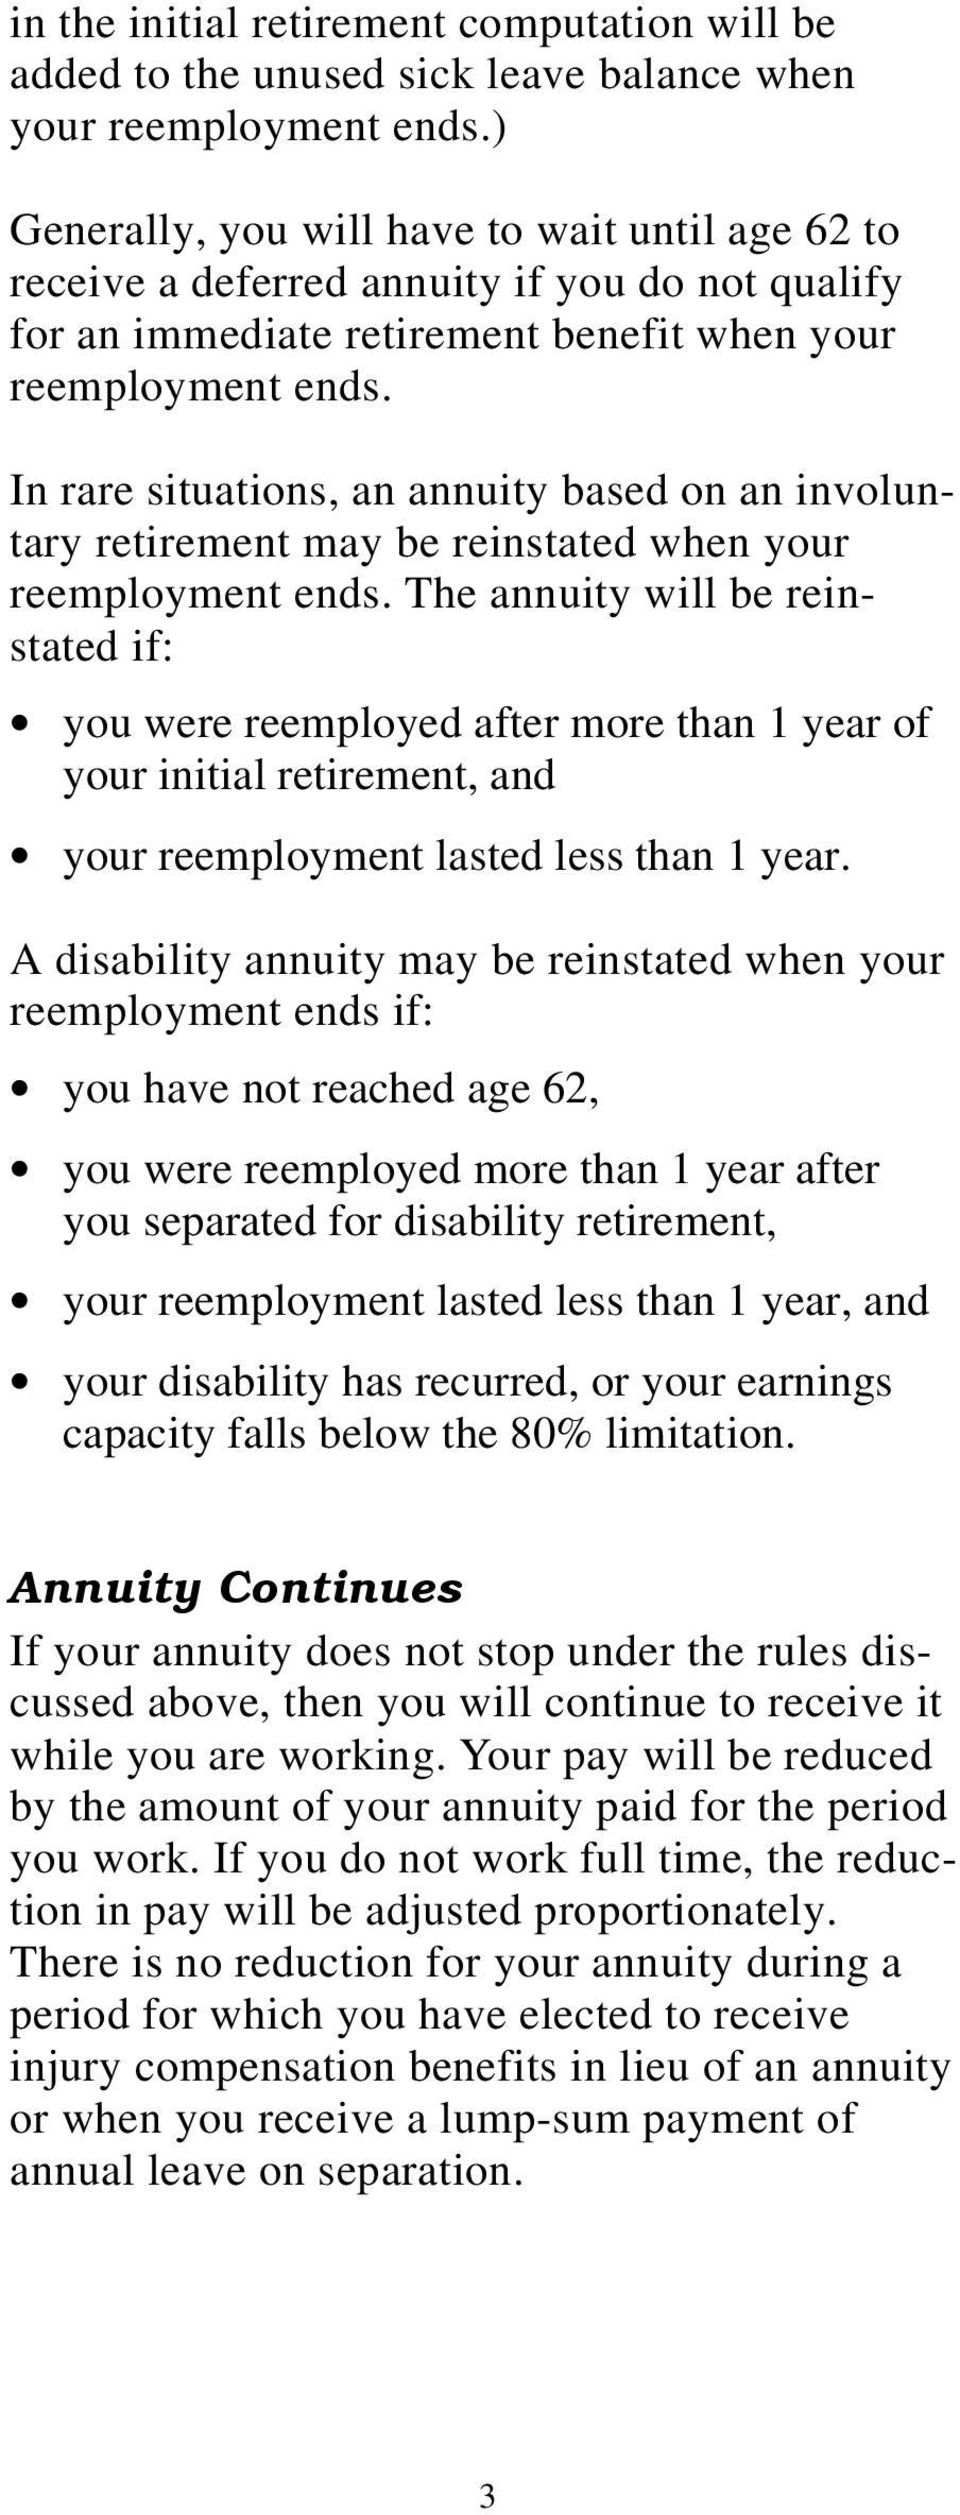 In rare situations, an annuity based on an involuntary retirement may be reinstated when your reemployment ends.